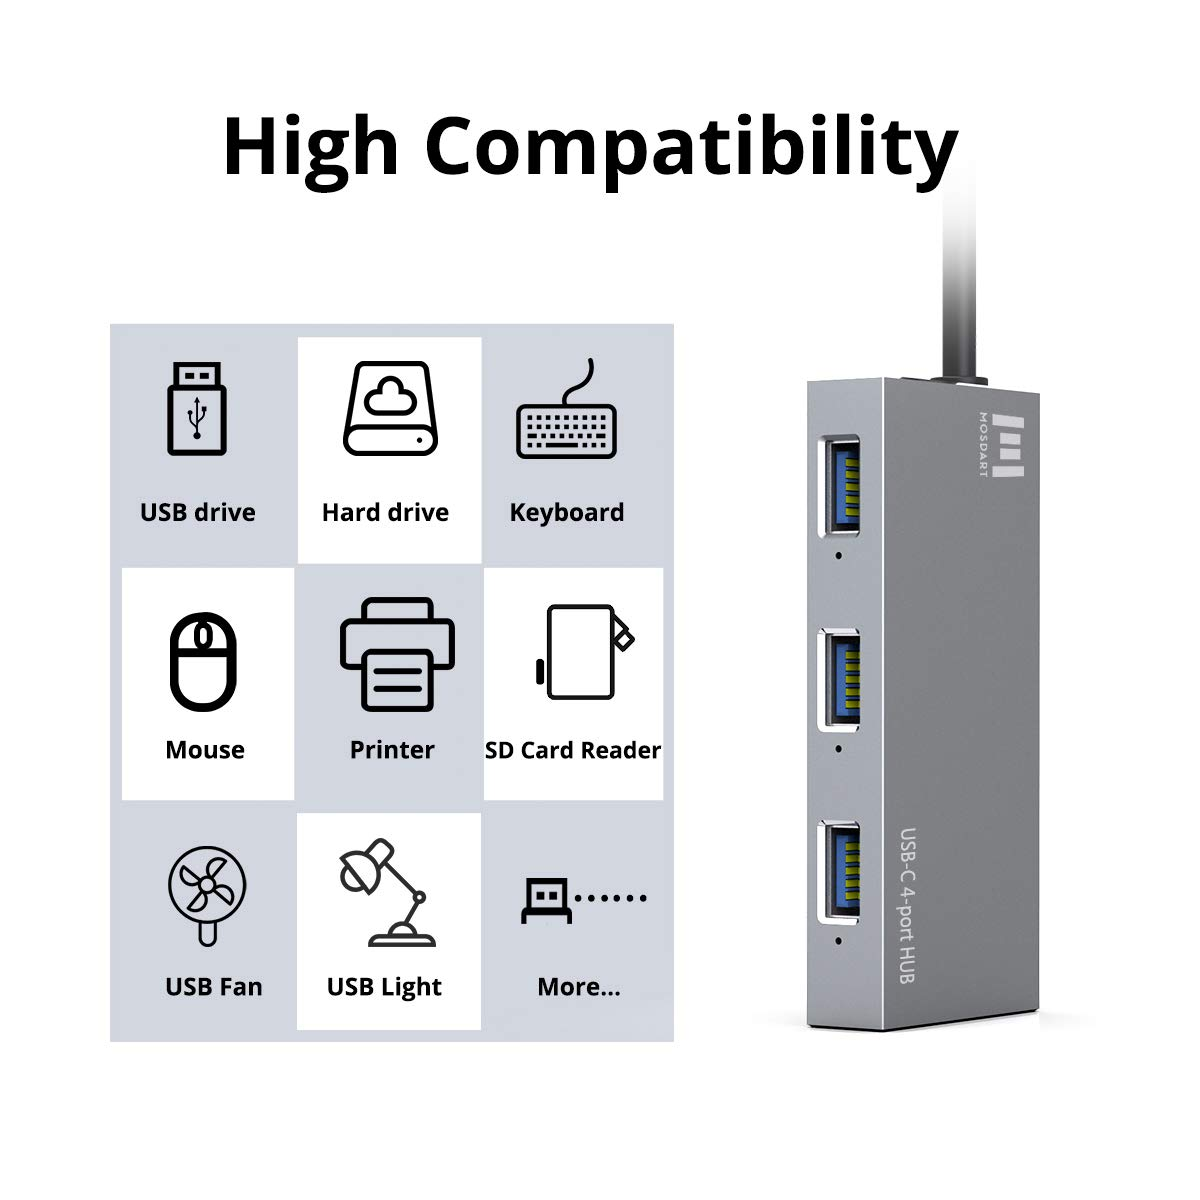 4 USB3.0 Ports Aluminum USB-C Hub Samsung S9 and More USBC Devices by Mosdart iMac 4-in-1 USB Type C to USB A Adapter Expander for MacBook Pro USB C Hub with Led Light Chromebook Pixelbook XPS